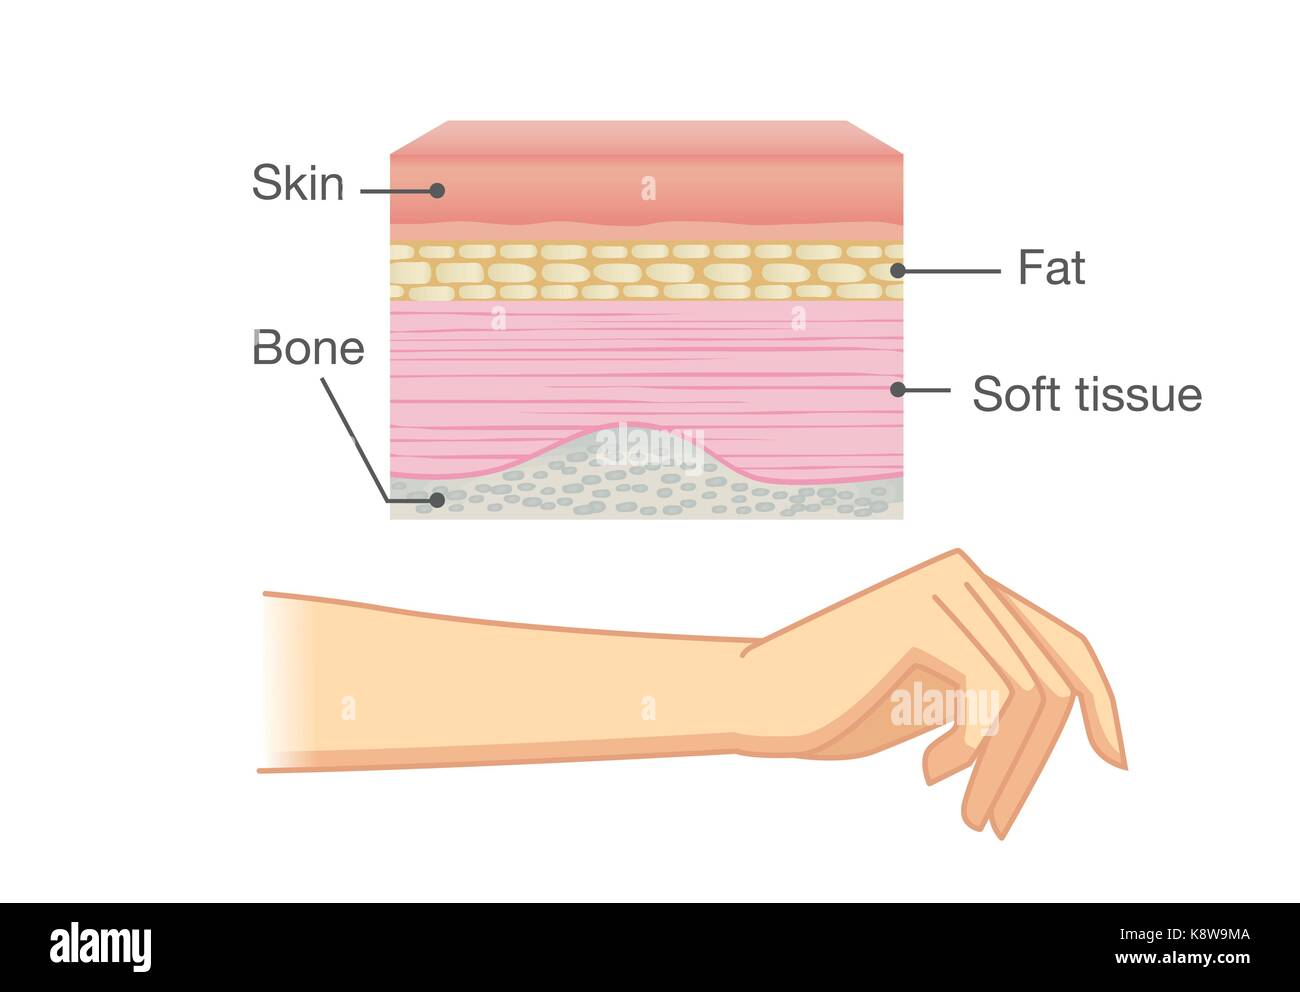 anatomy of human skin layer and arm  - stock image